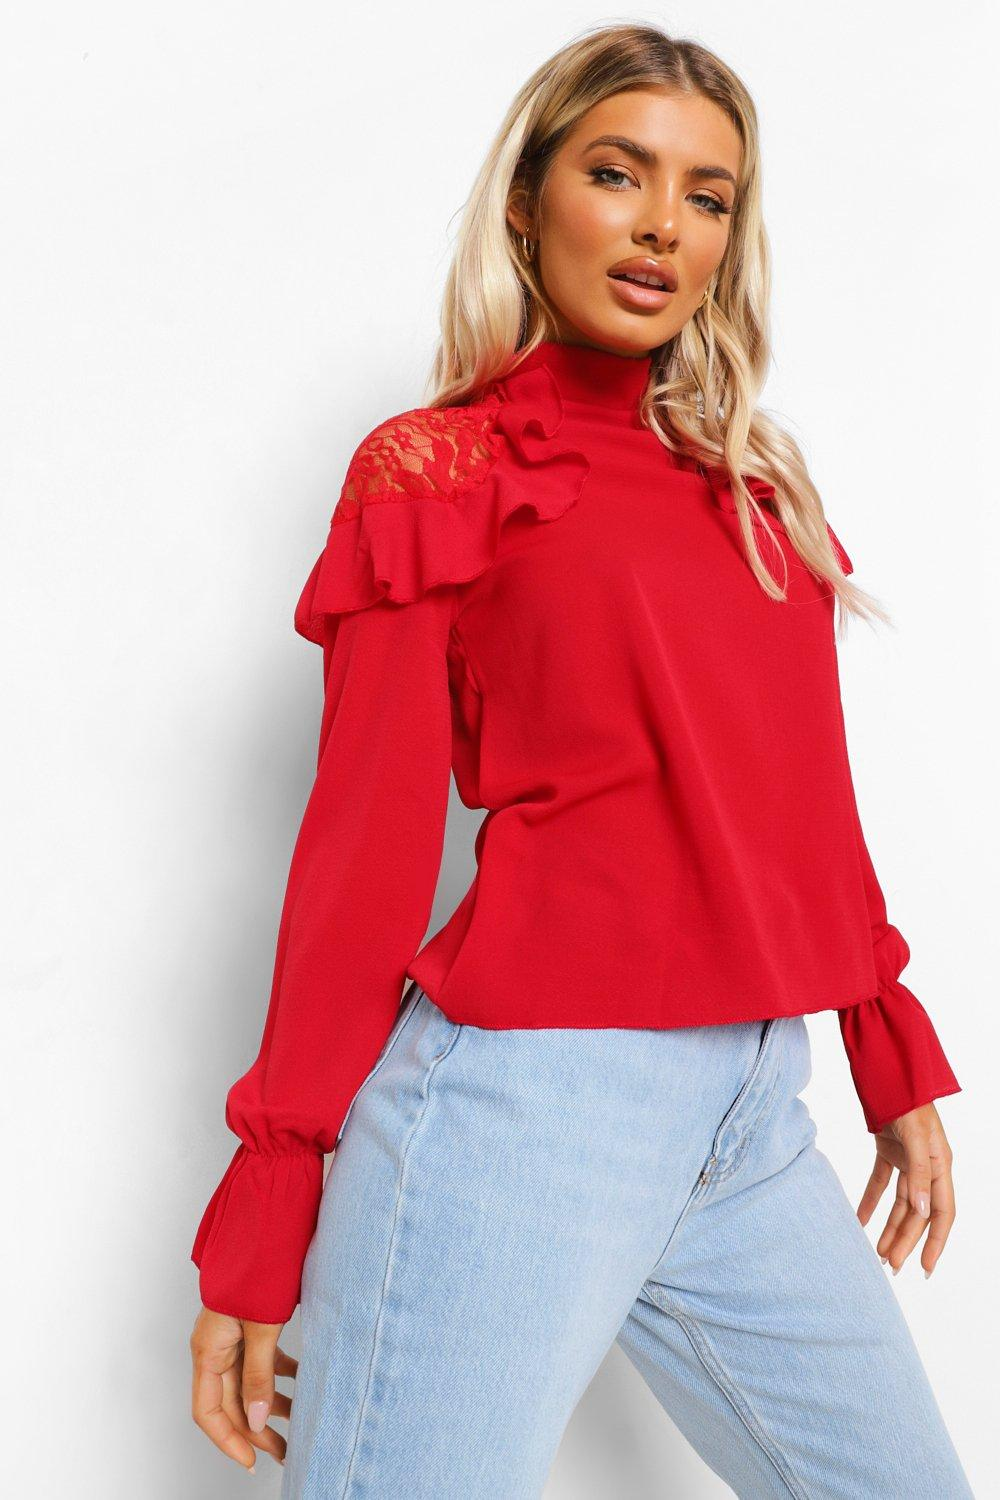 boohoo Womens Woven Ruffle Lace Detail Blouse - Red - 12, Red